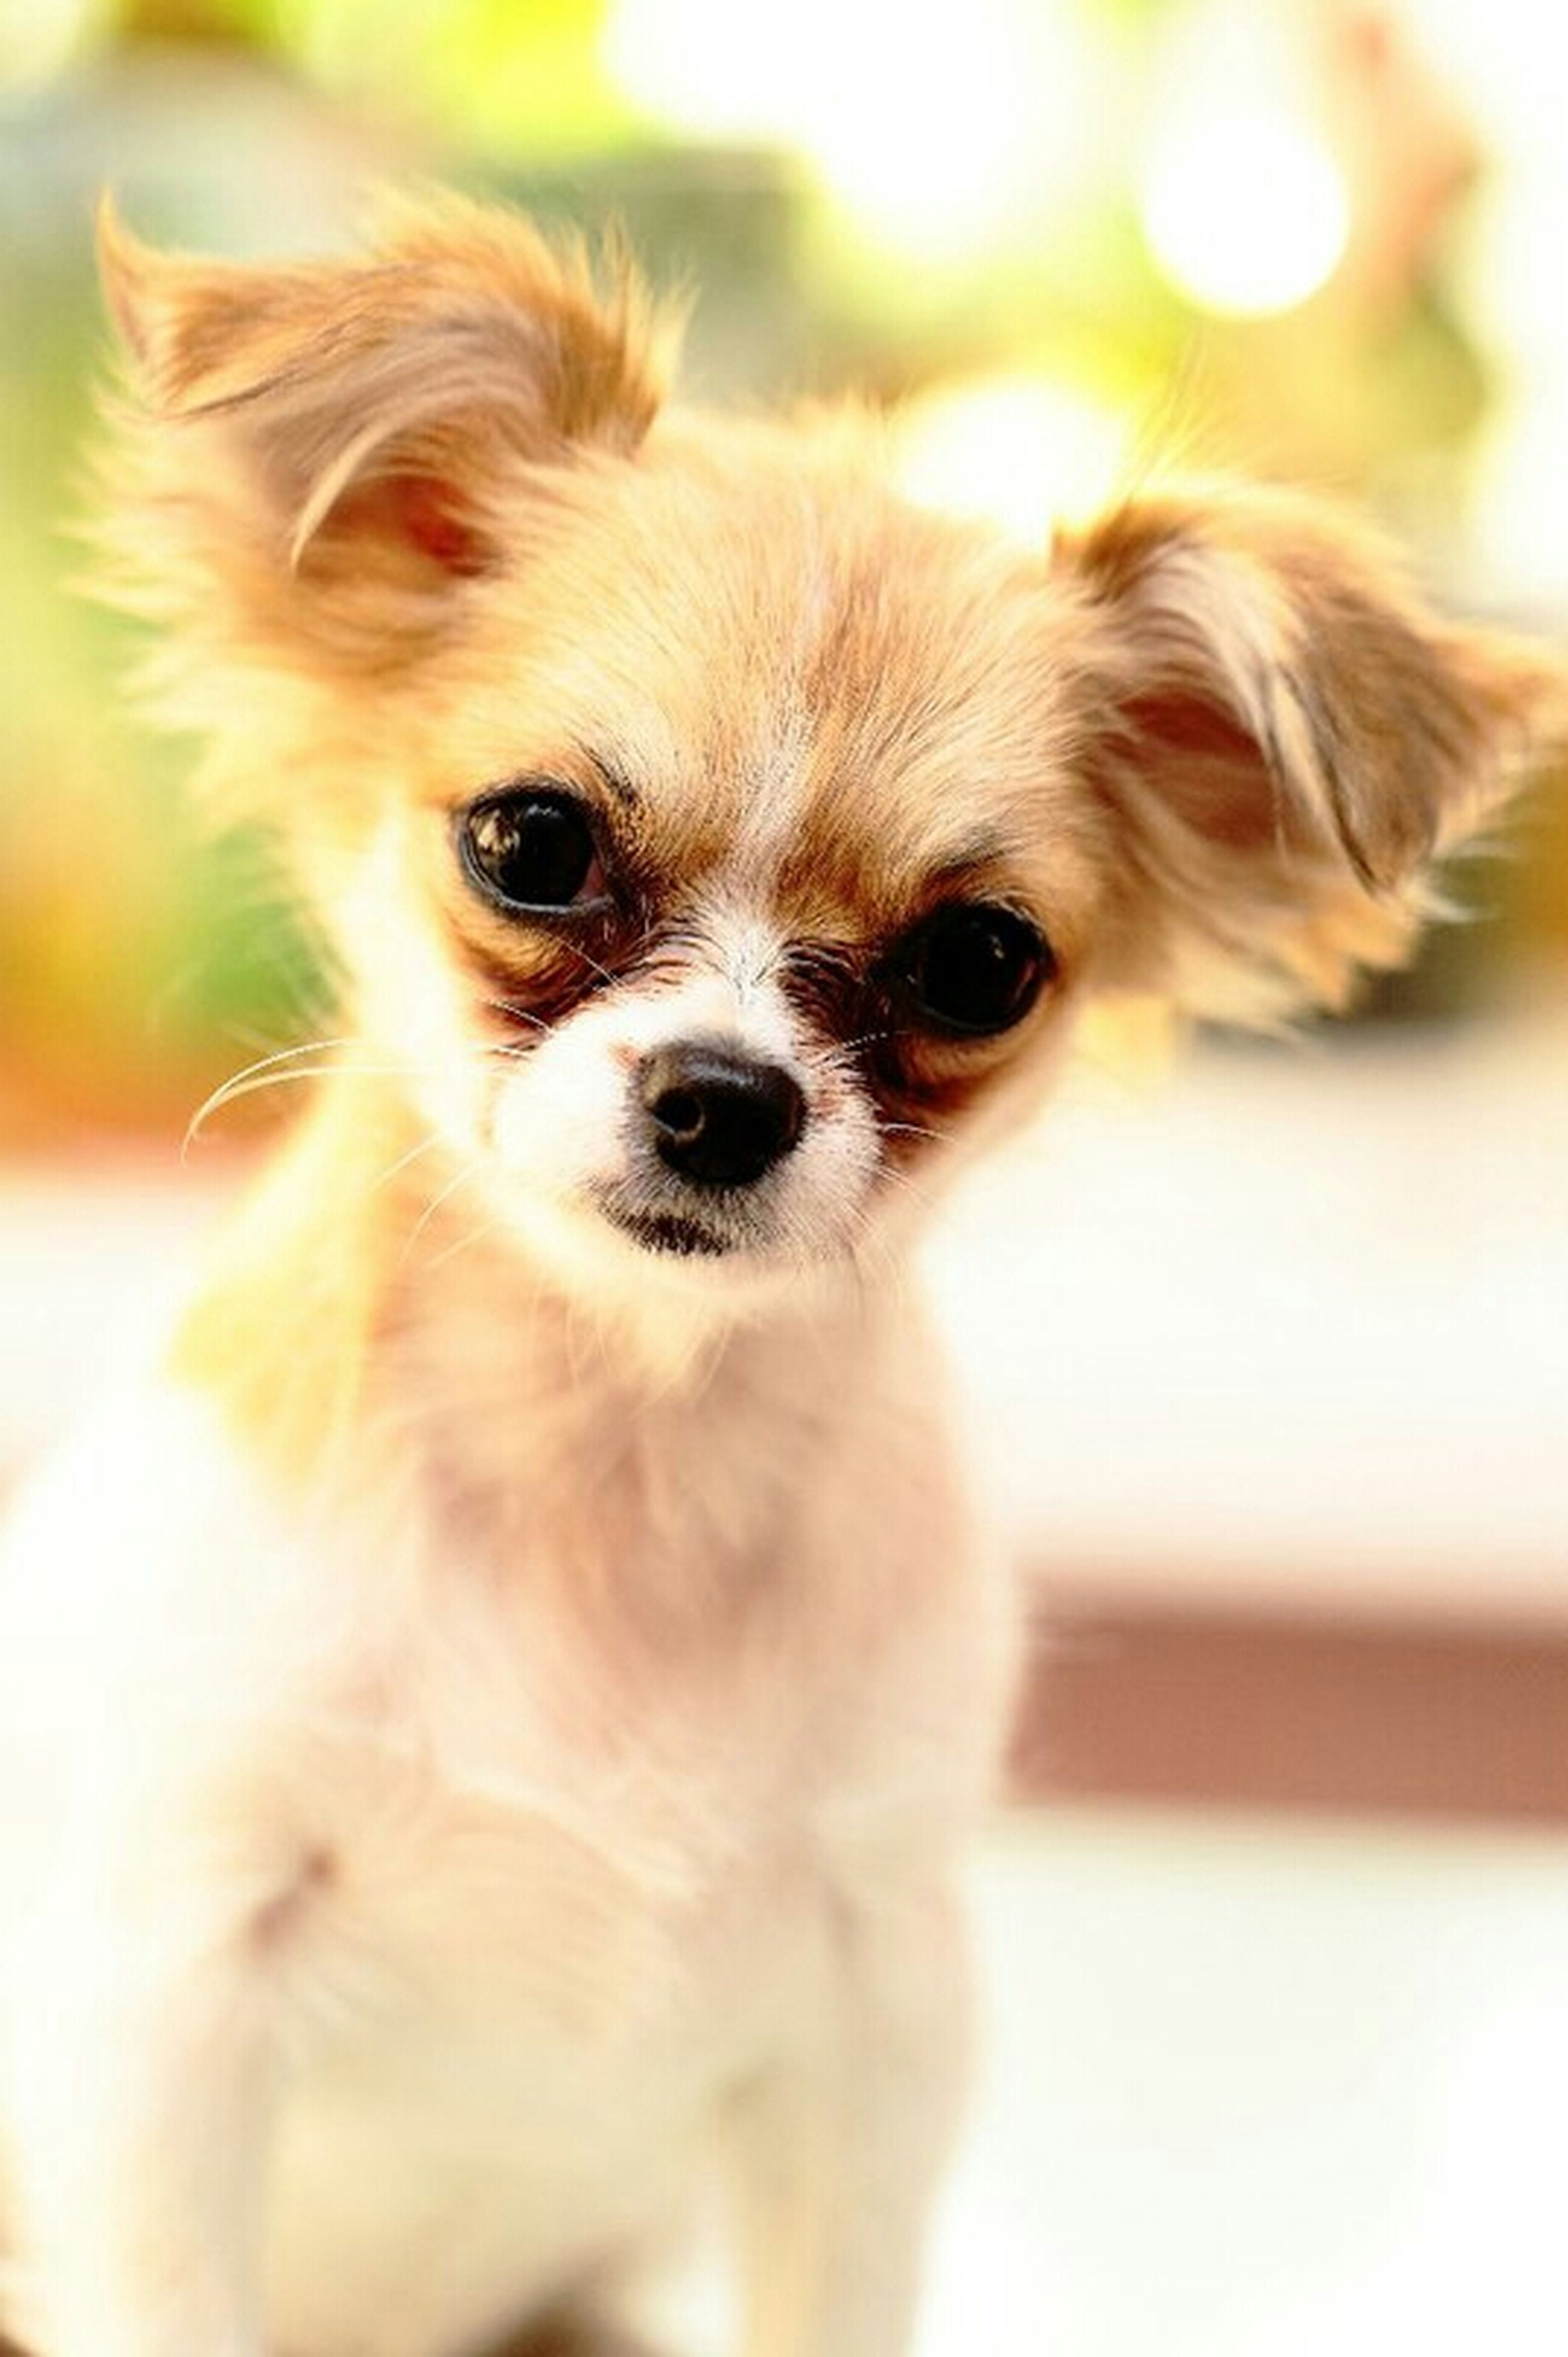 pets, animal themes, dog, domestic animals, one animal, mammal, portrait, looking at camera, indoors, focus on foreground, close-up, cute, animal hair, animal head, front view, young animal, no people, selective focus, puppy